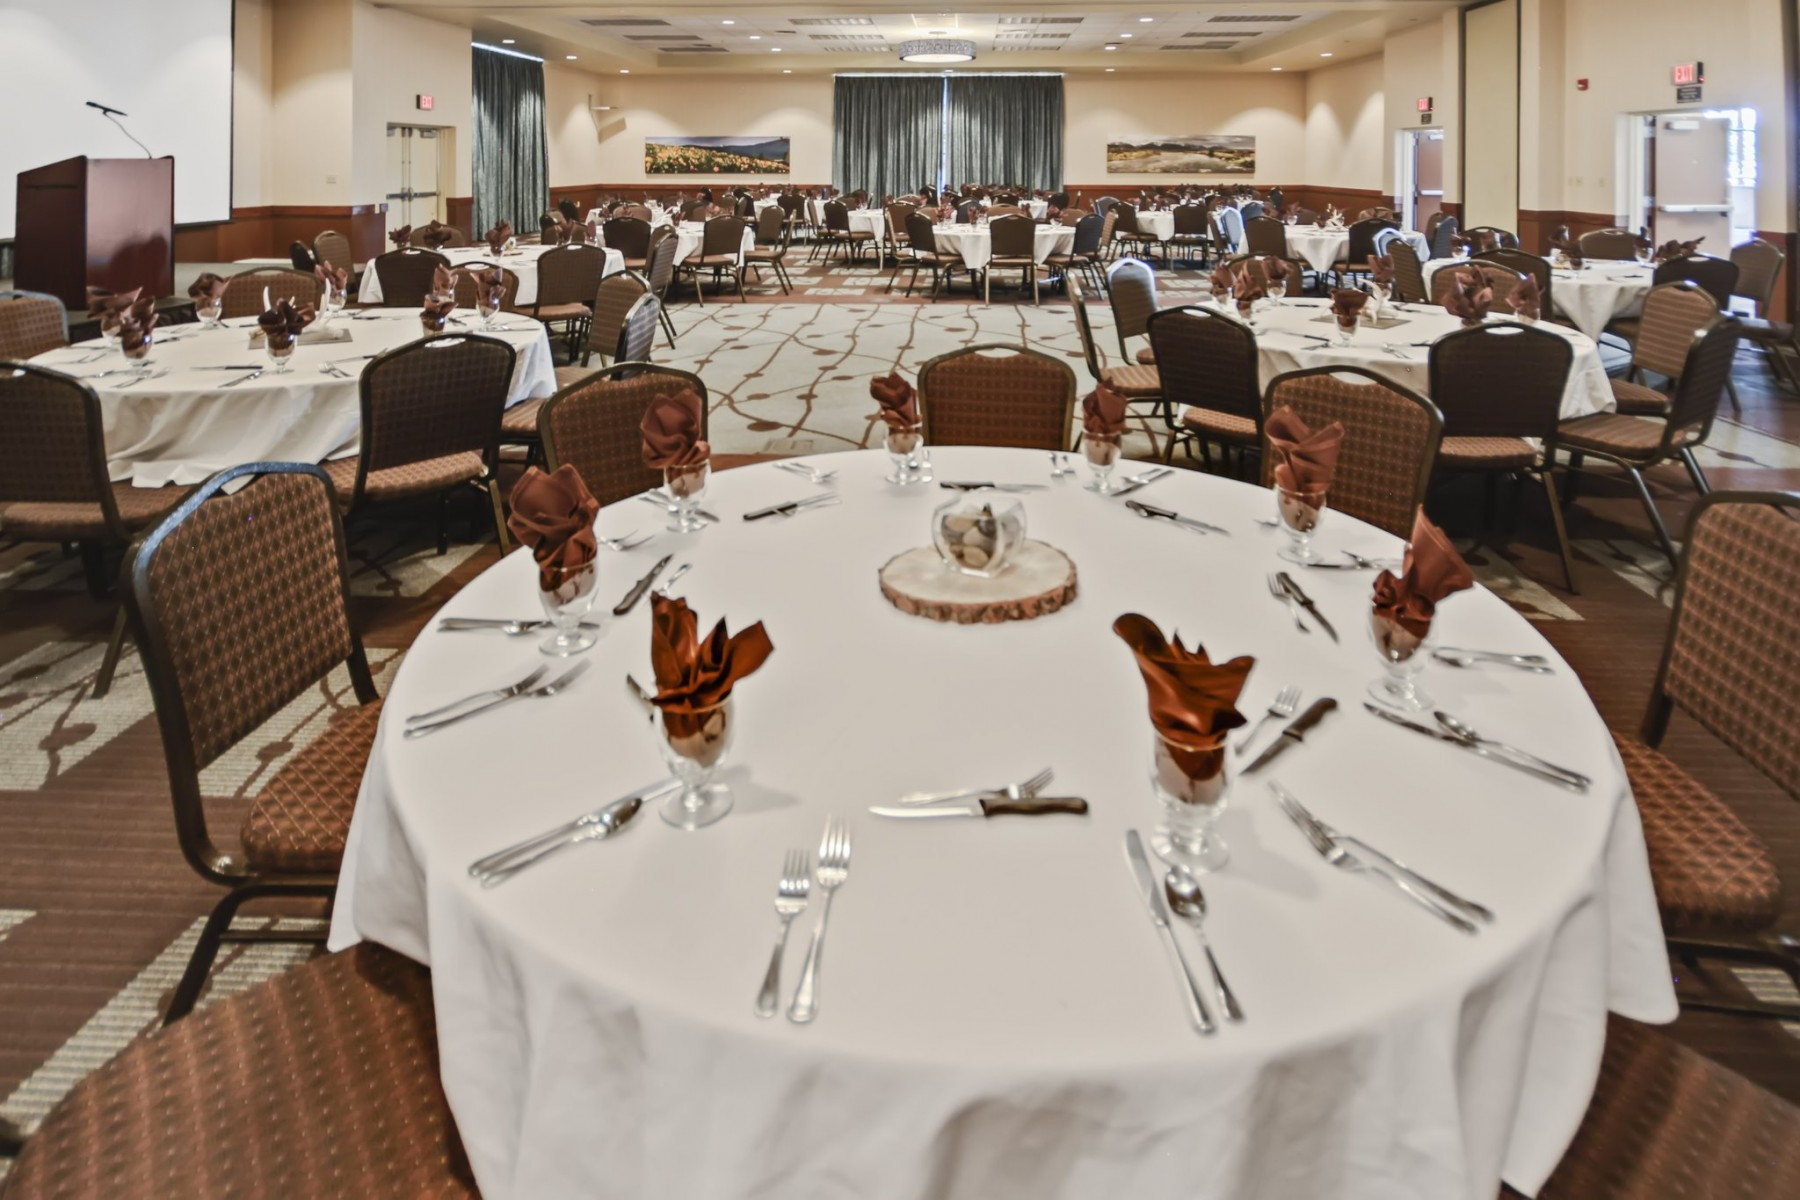 Banquet/Wedding Tables